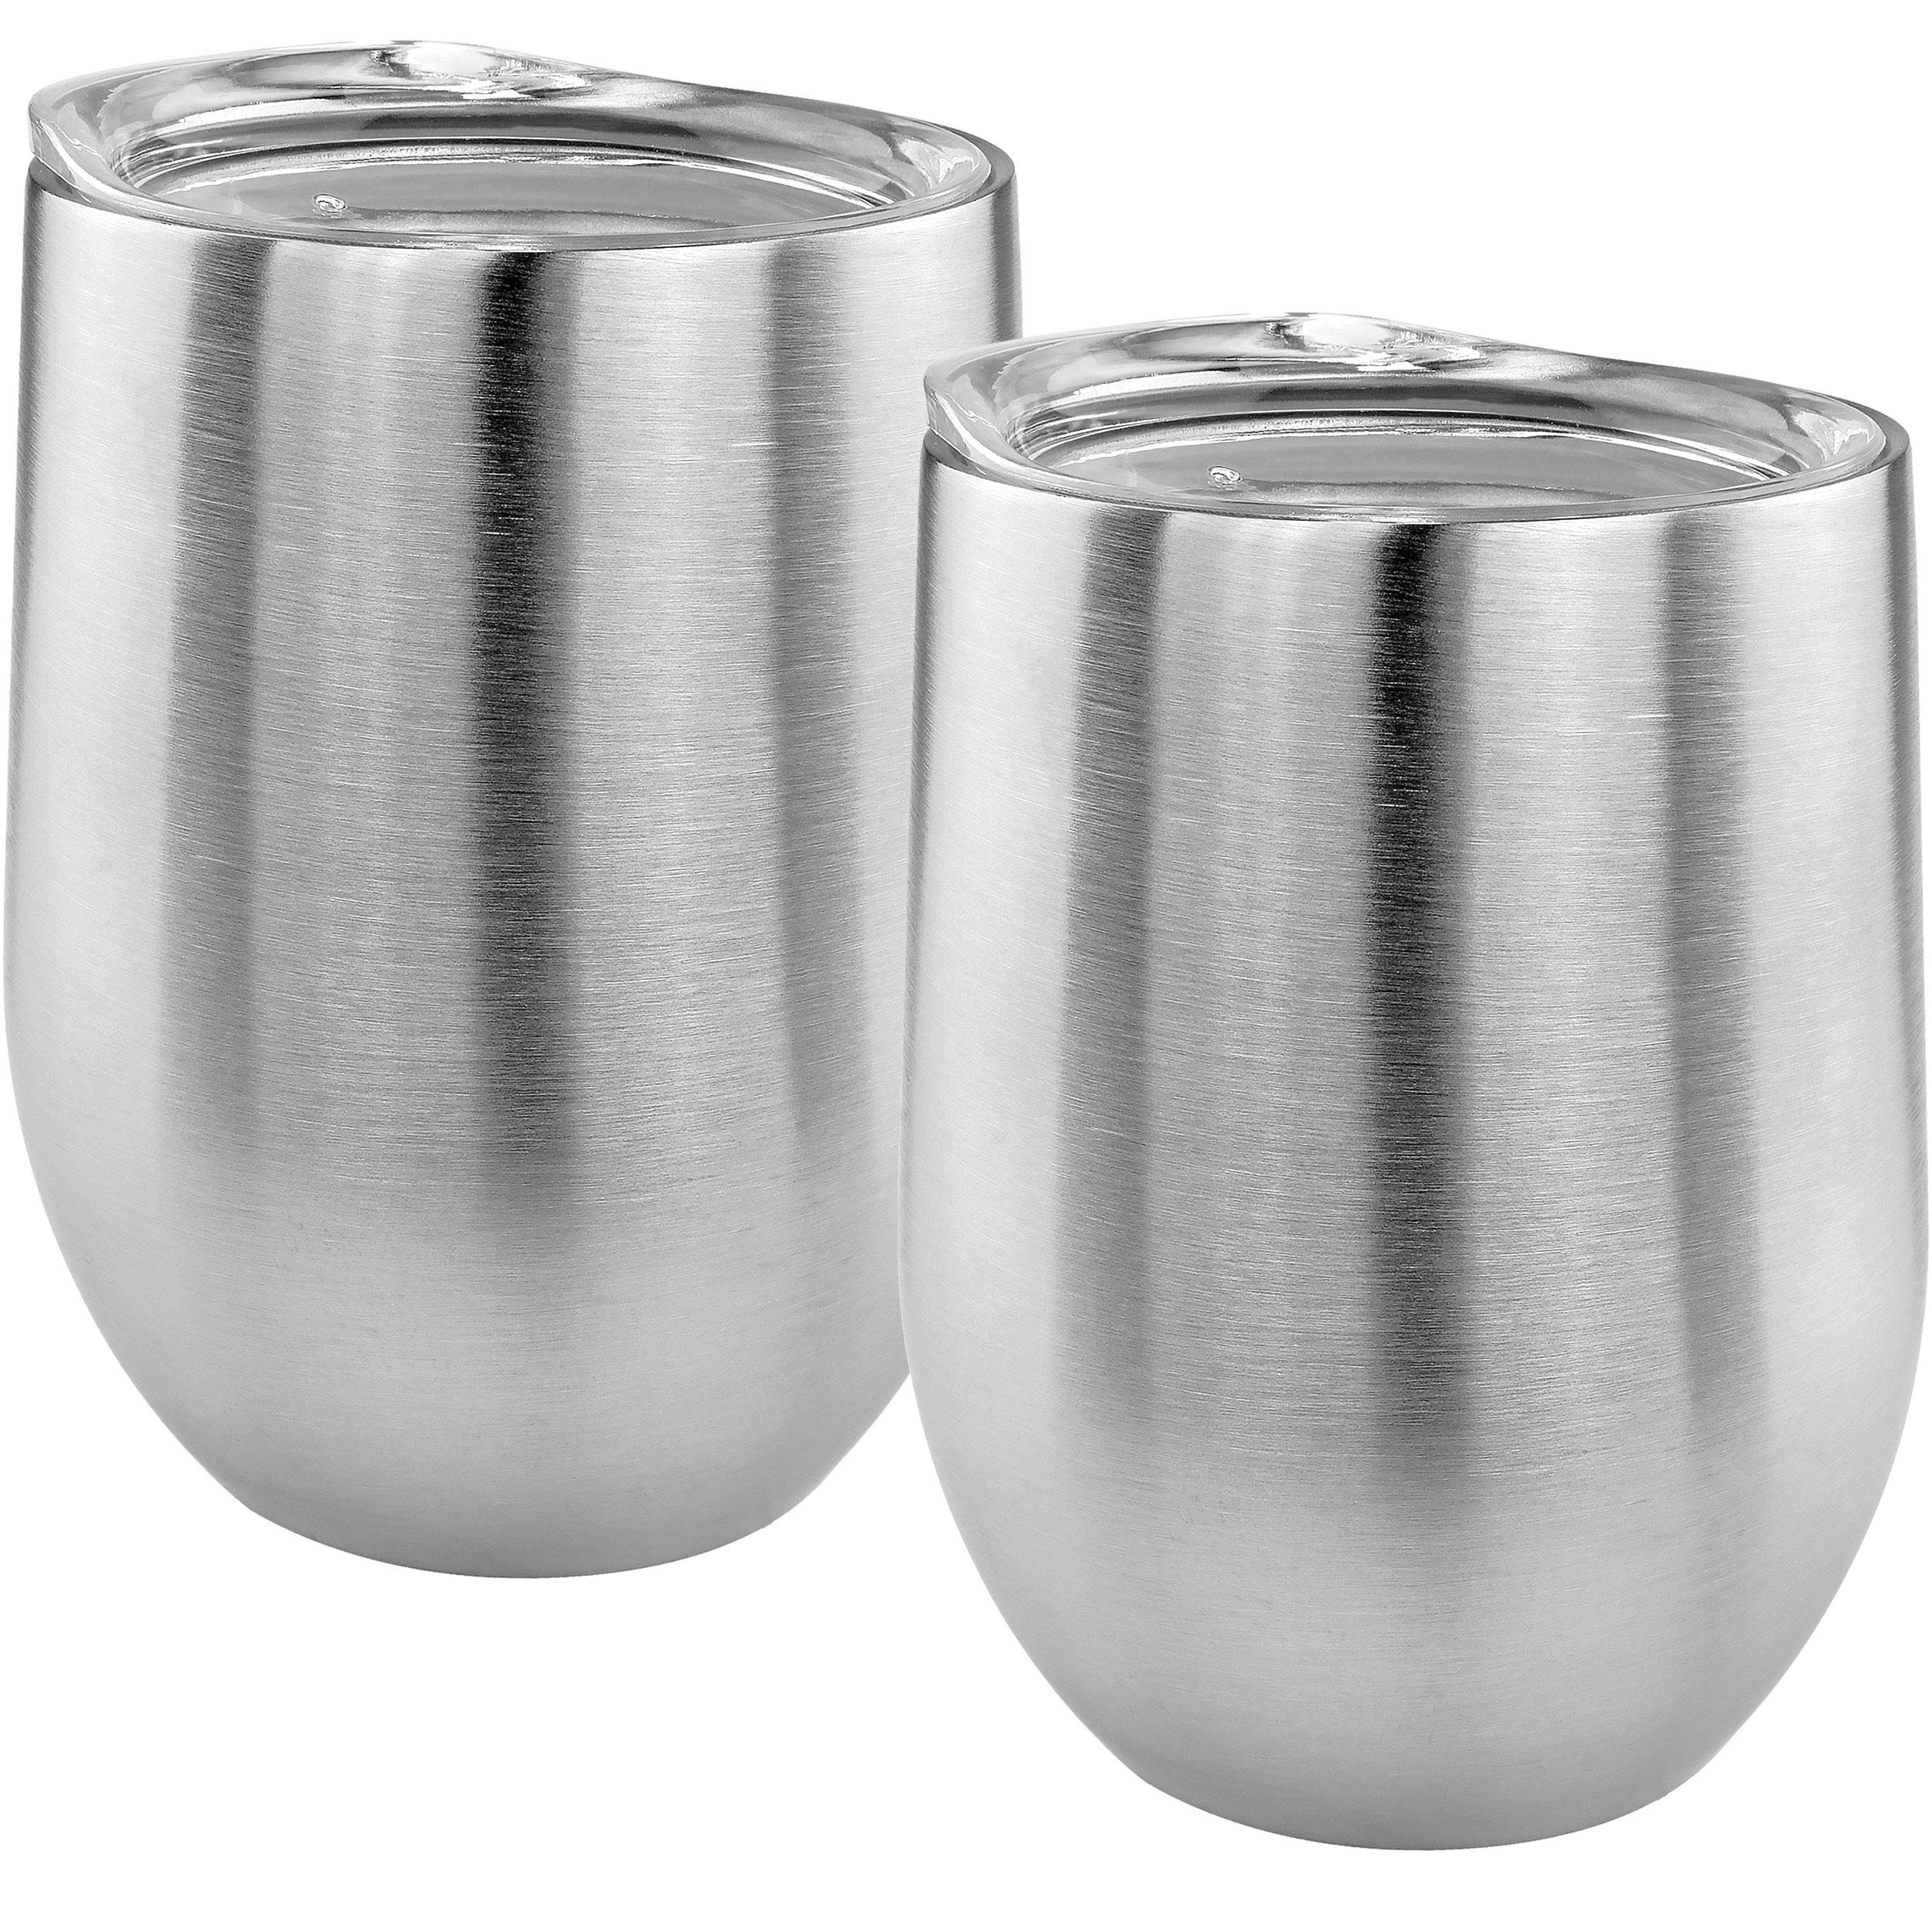 Southern Homewares SH-10212-S2 Double Wall Stainless Stemless Wine Glass (Set of 2), 14oz, Silver